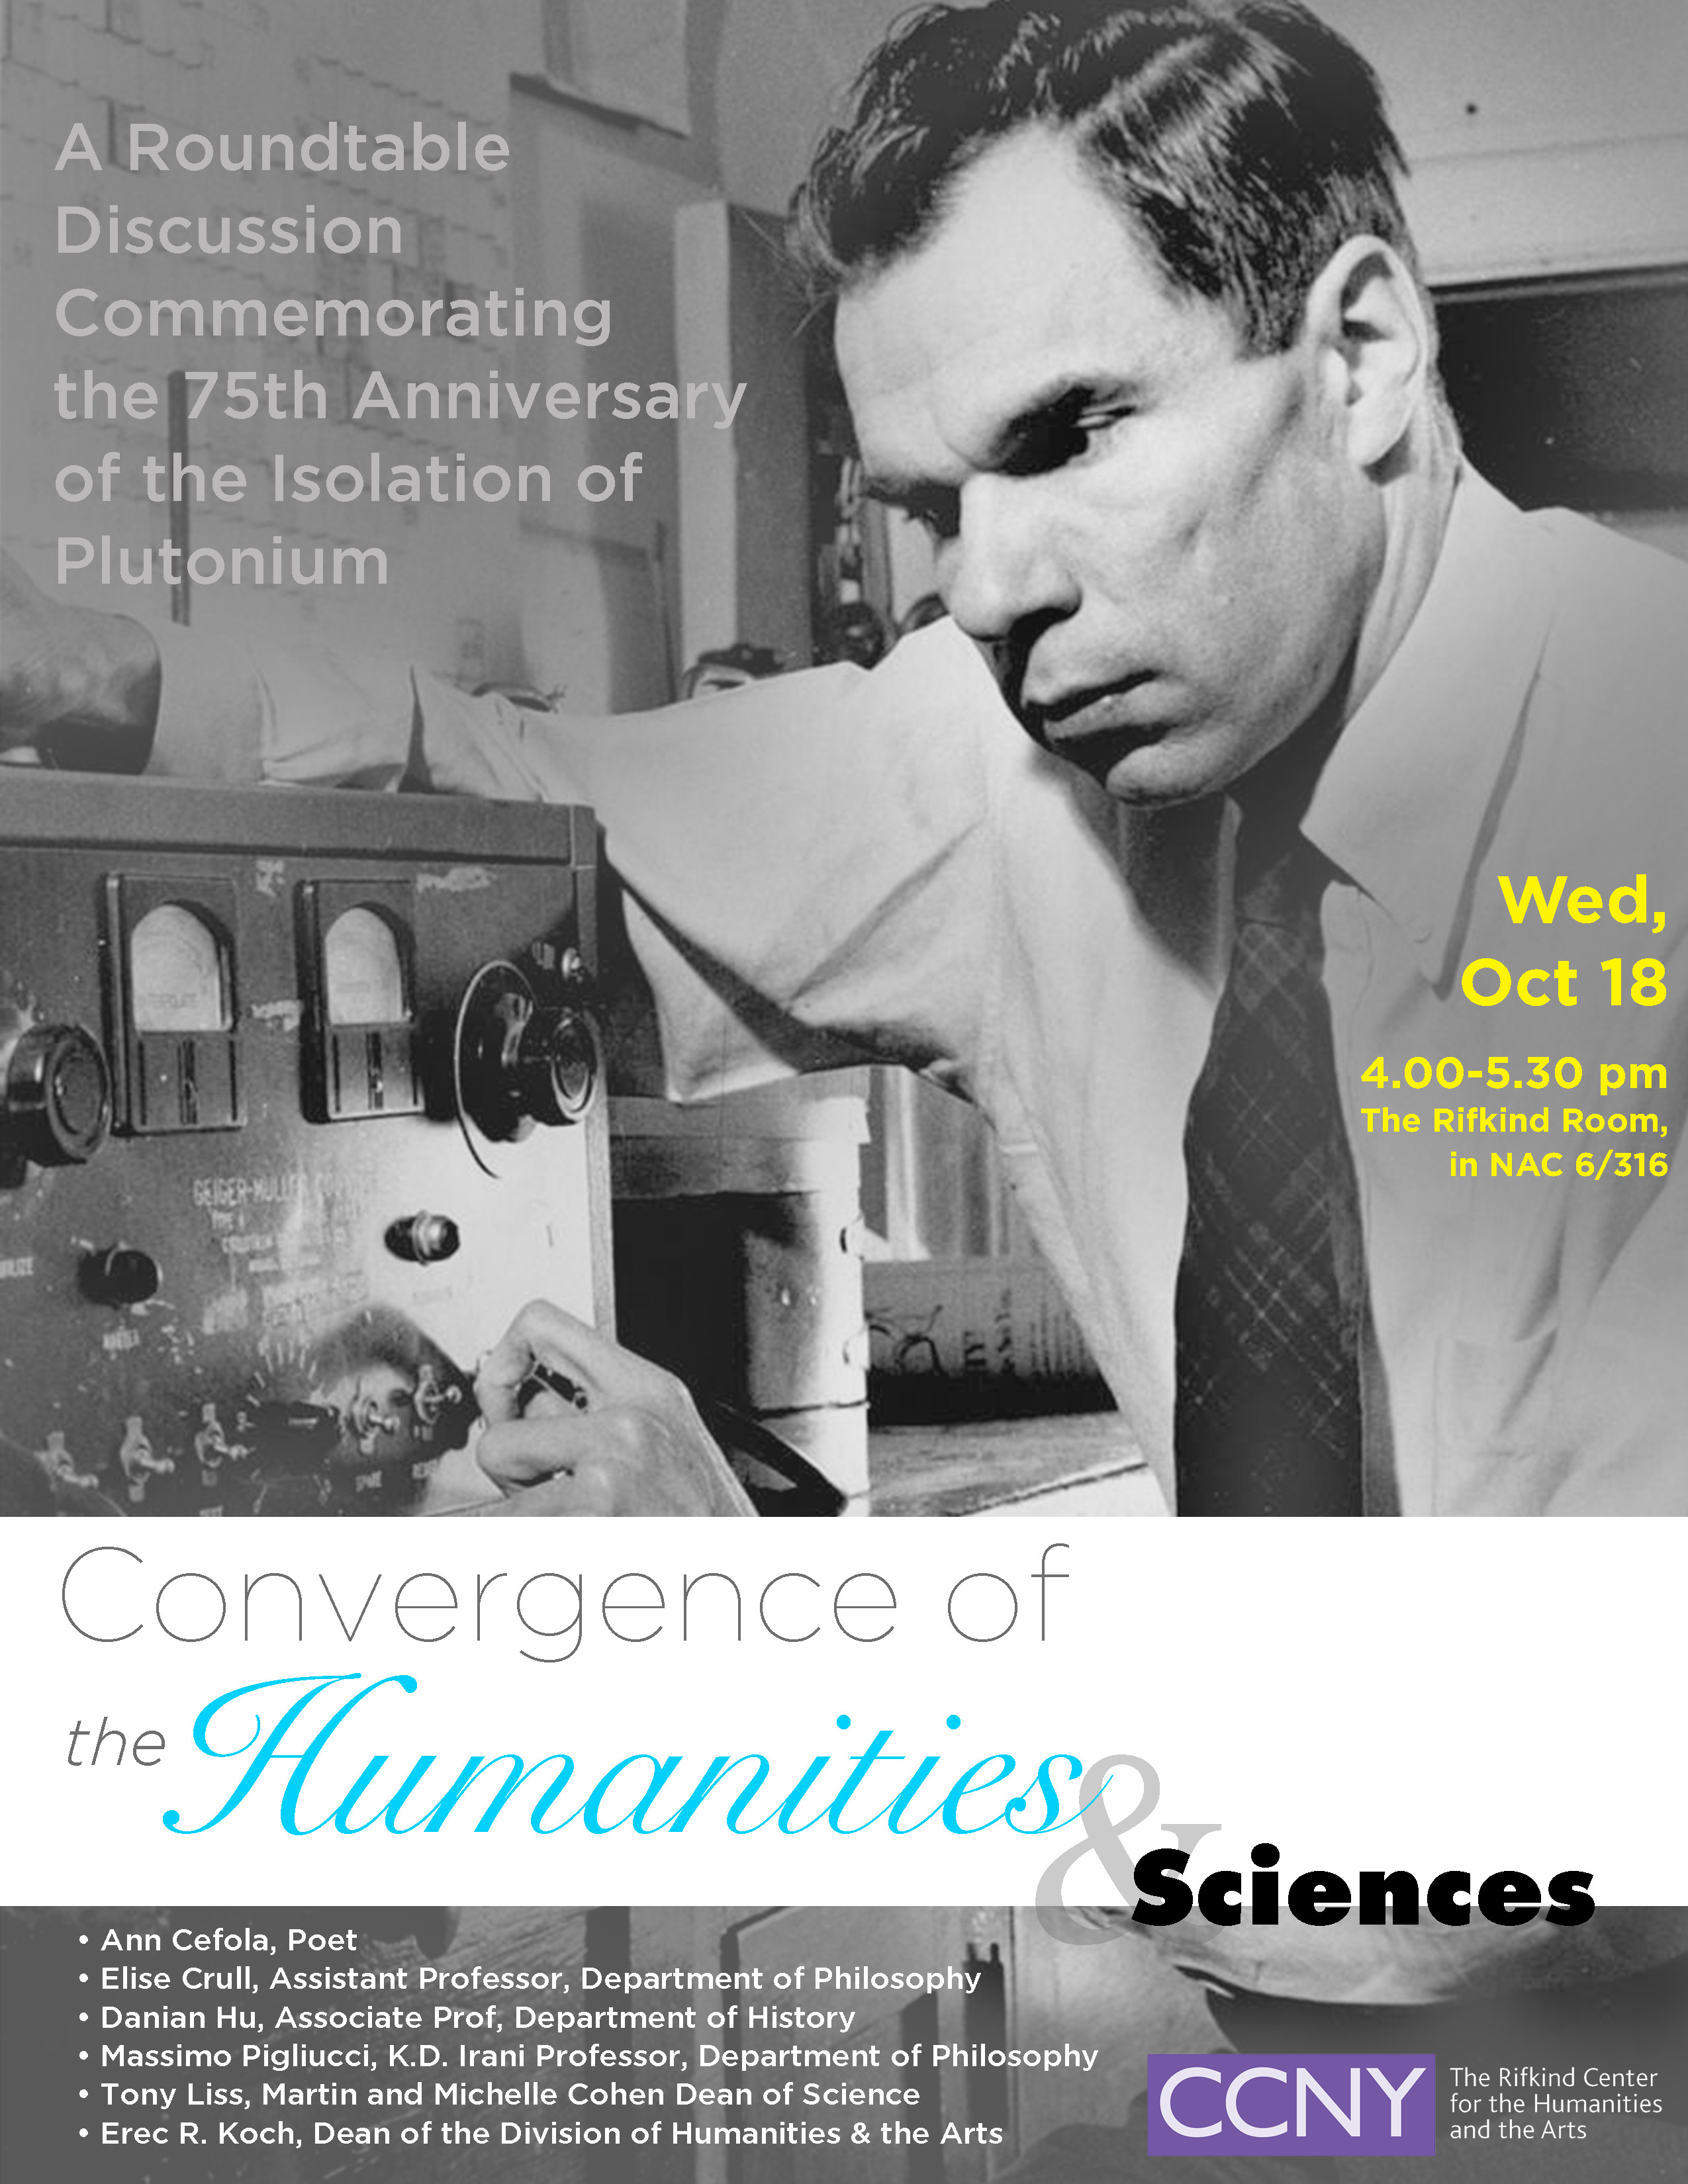 Convergence of the Humanities & Sciences